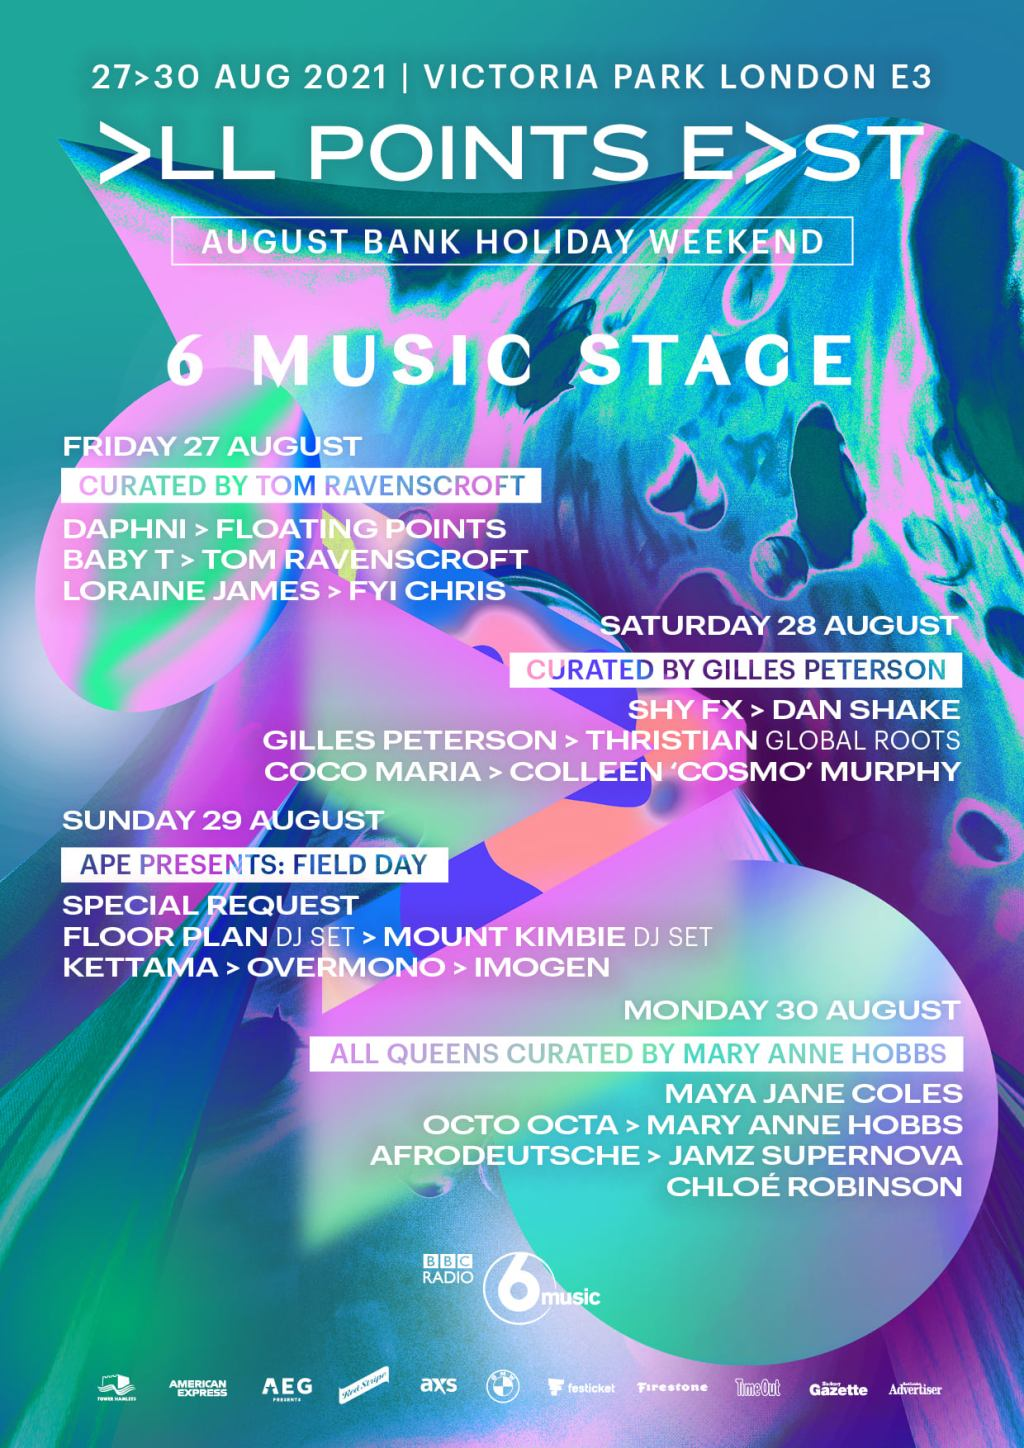 We're thrilled to welcome BBC Radio 6 Music to All Points East this summer. The 6 Music Stage will ...